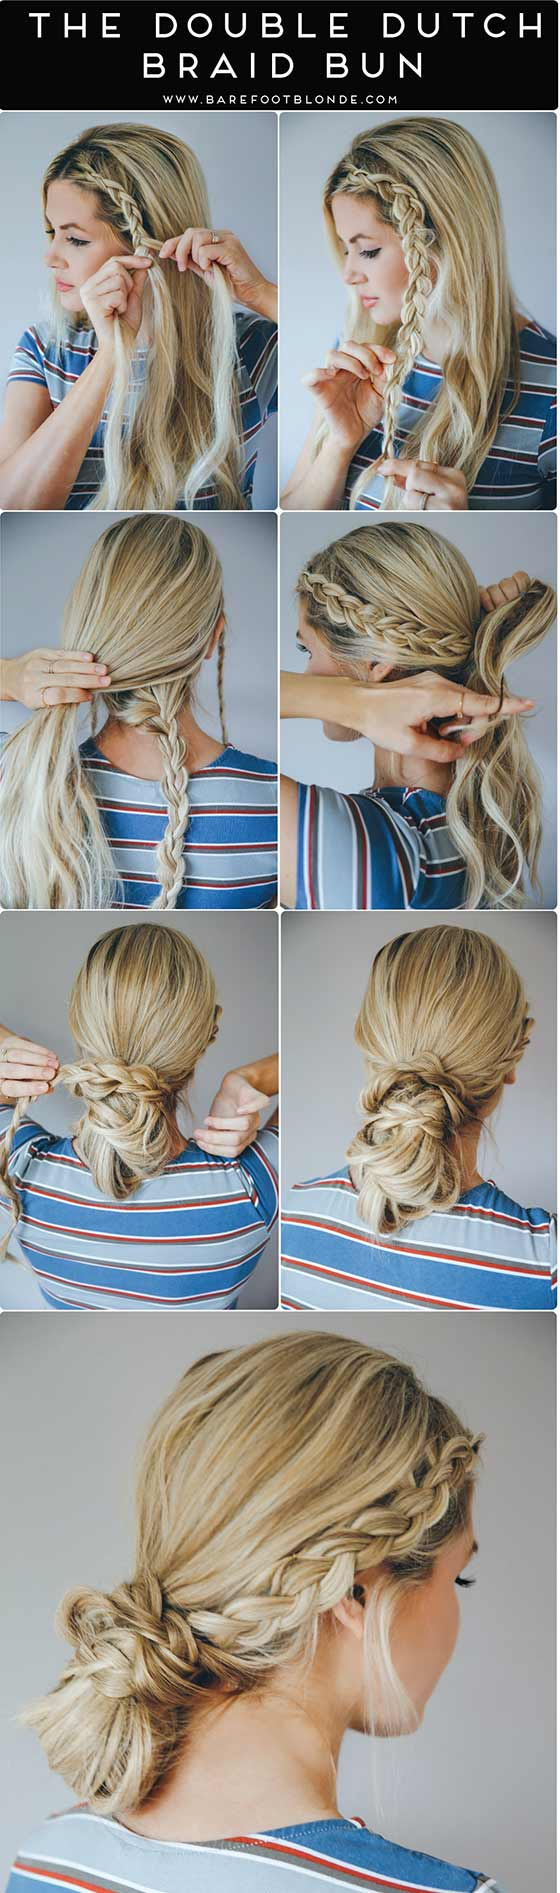 Double-Dutch-Braid-Bun